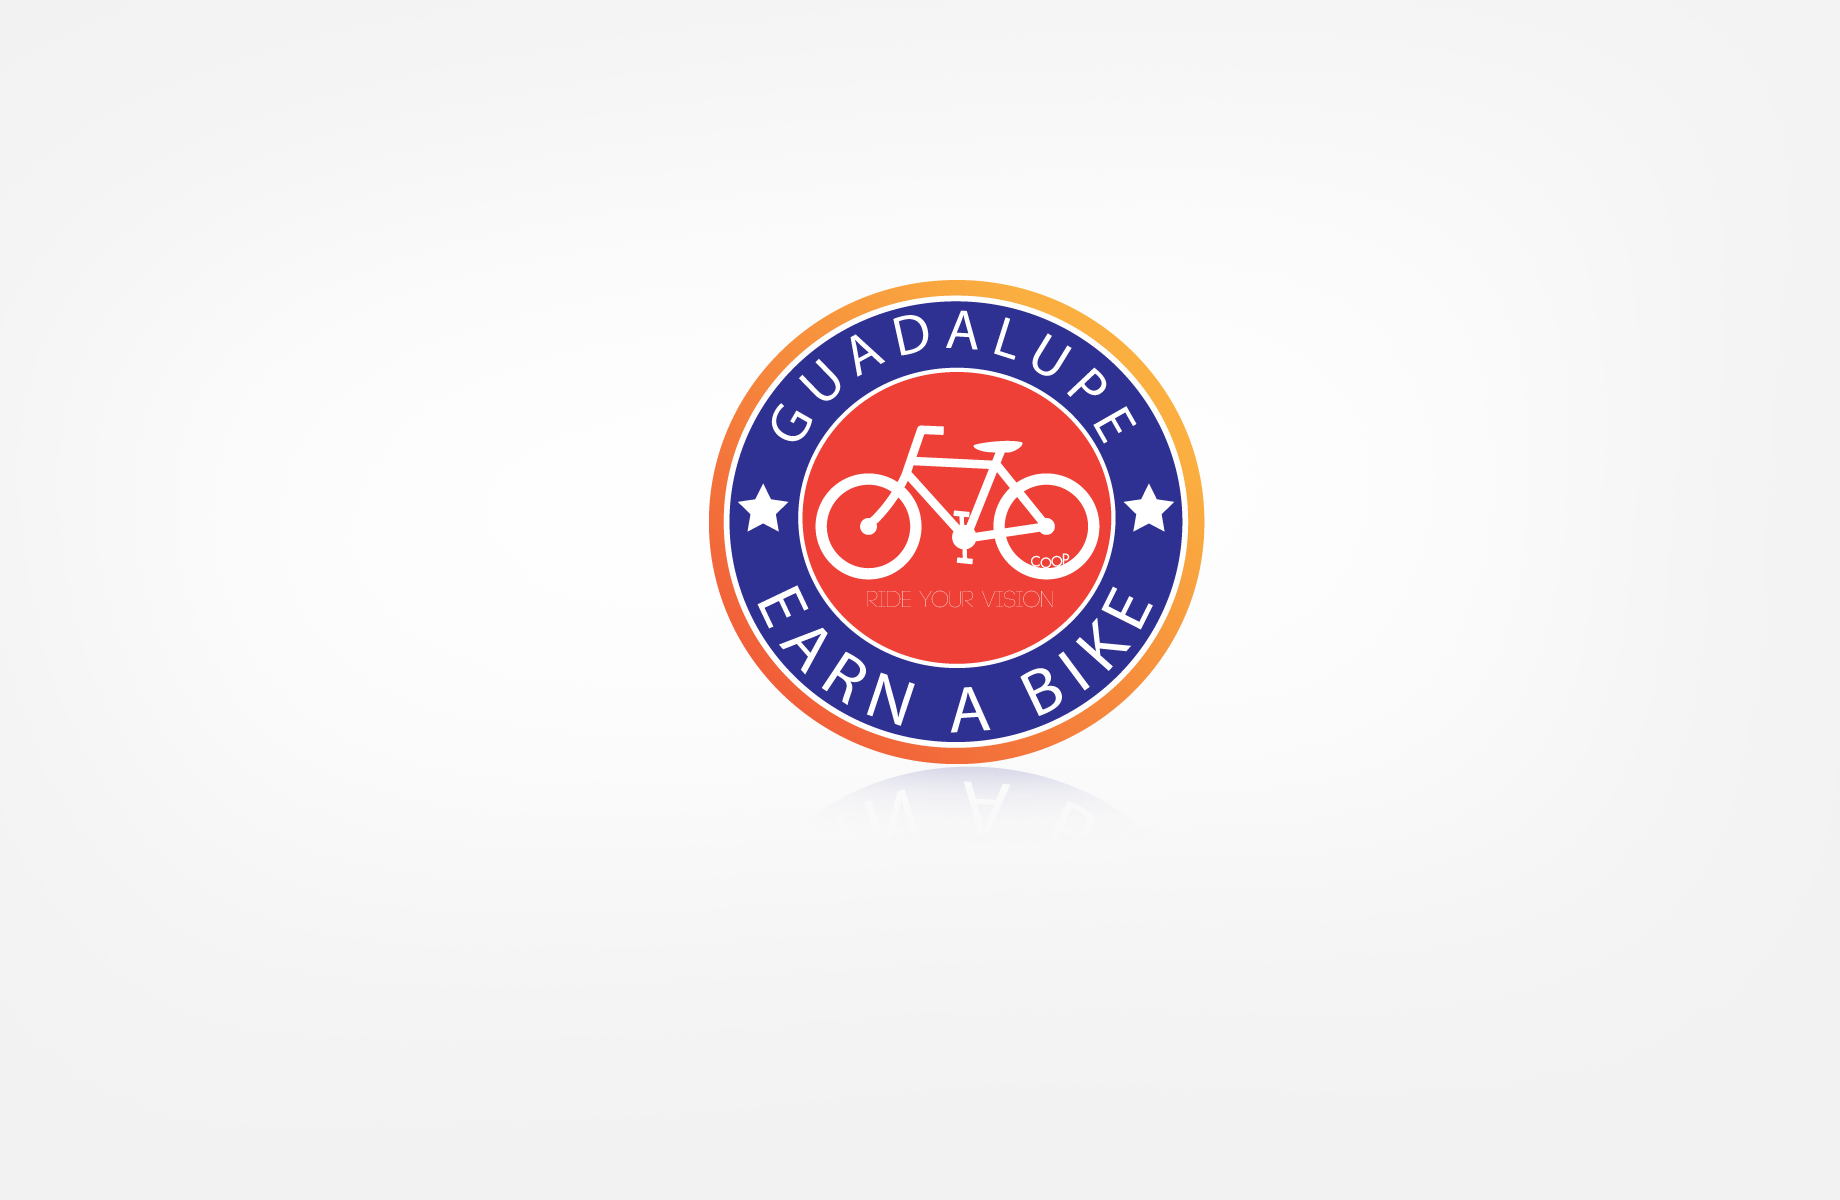 Logo Design by Jan Chua - Entry No. 53 in the Logo Design Contest Inspiring Logo Design for Guadalupe Earn a Bike Coop..